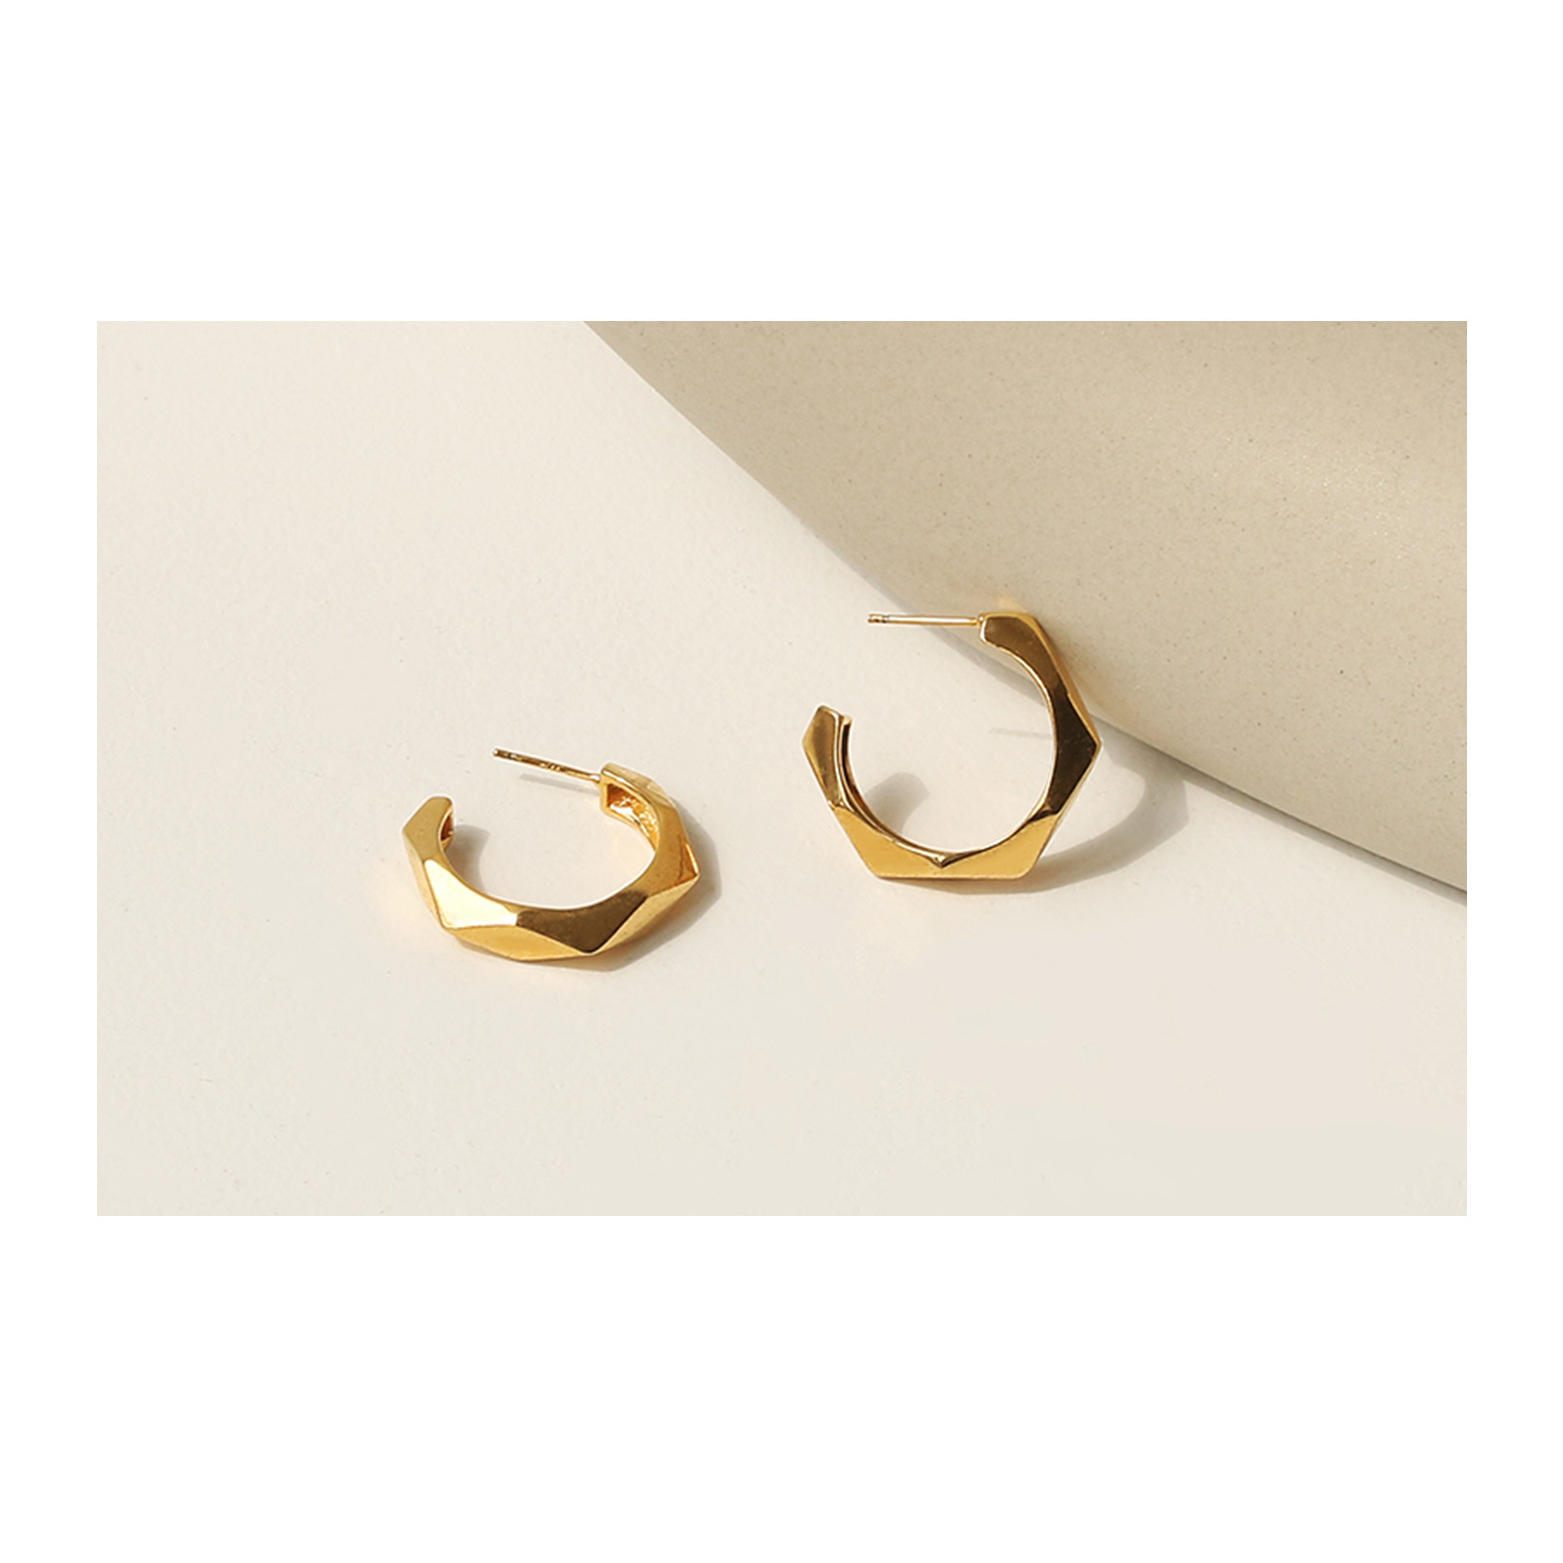 product-2021 New Trendy Faceted brass Earring Polished Rhombus Hoop Earring Dainty Jewelry for Women-1